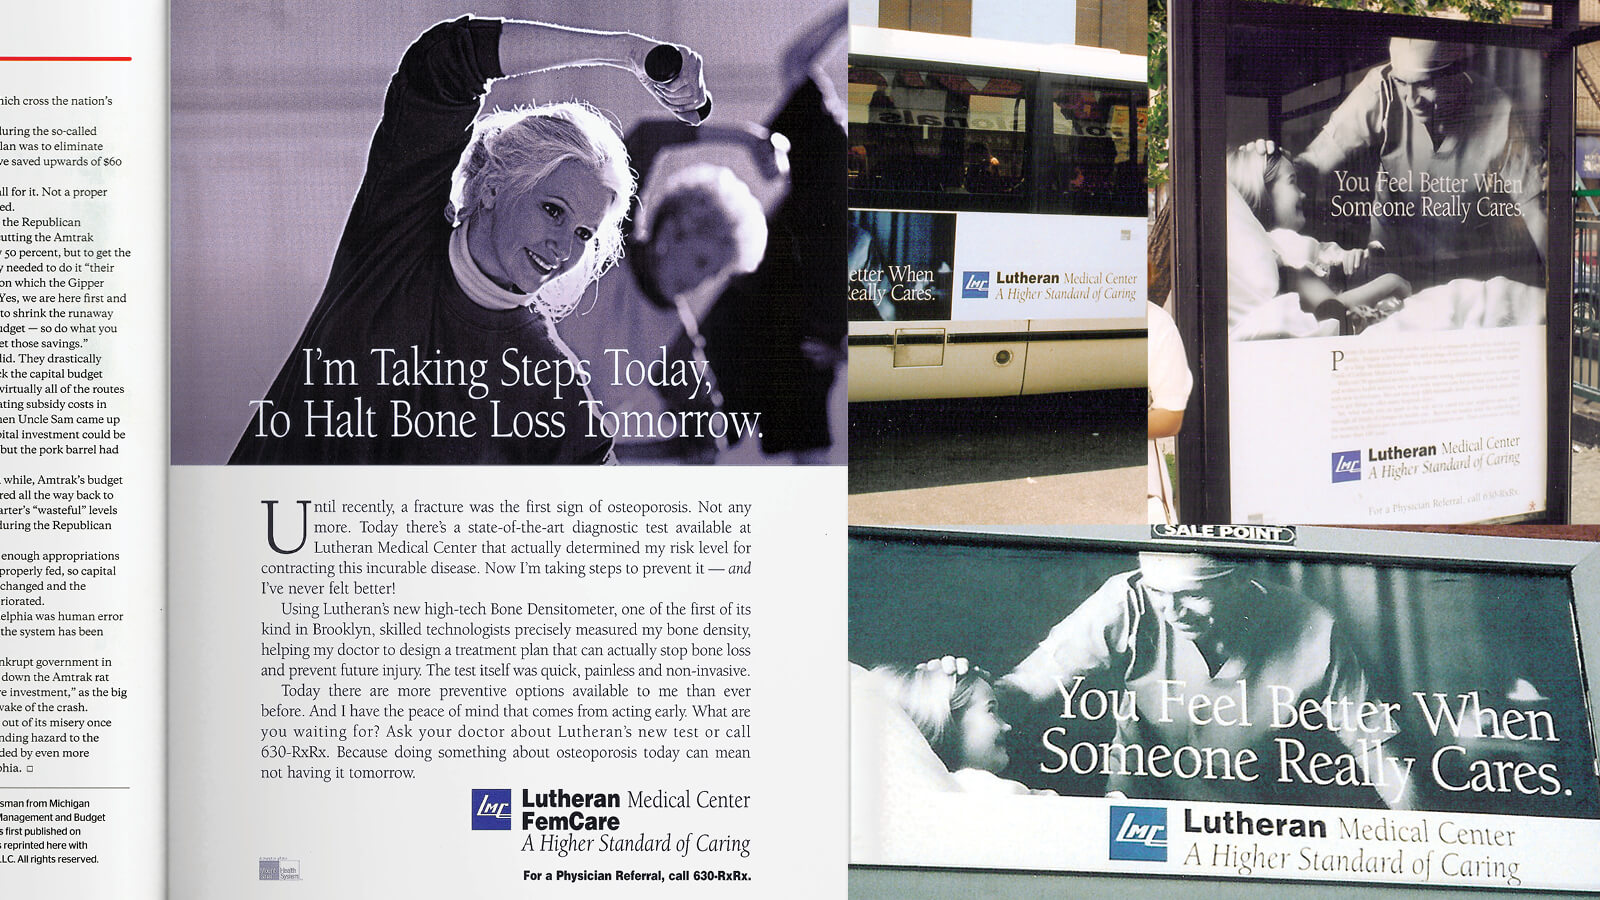 Lutheran Medical Center Higher Standard Ad Campaign